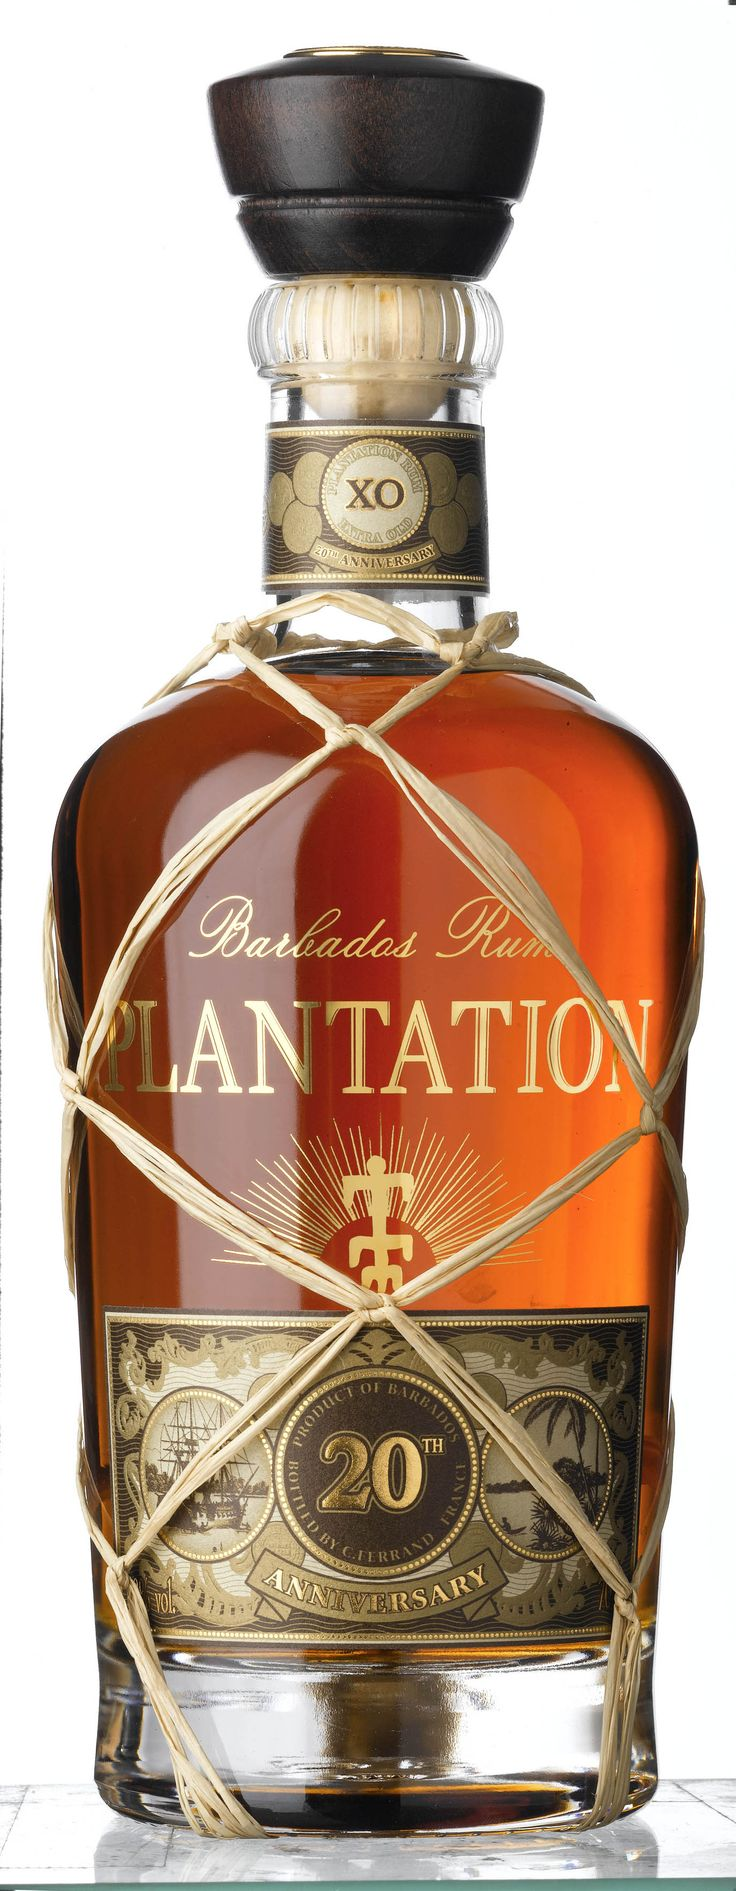 Review: Plantation Rum Lineup (2015) – 3 Stars White, Original Dark, Barbados 5 Years Old, Extra Old 20th Anniversary, Old Reserve 2001, and Pineapple